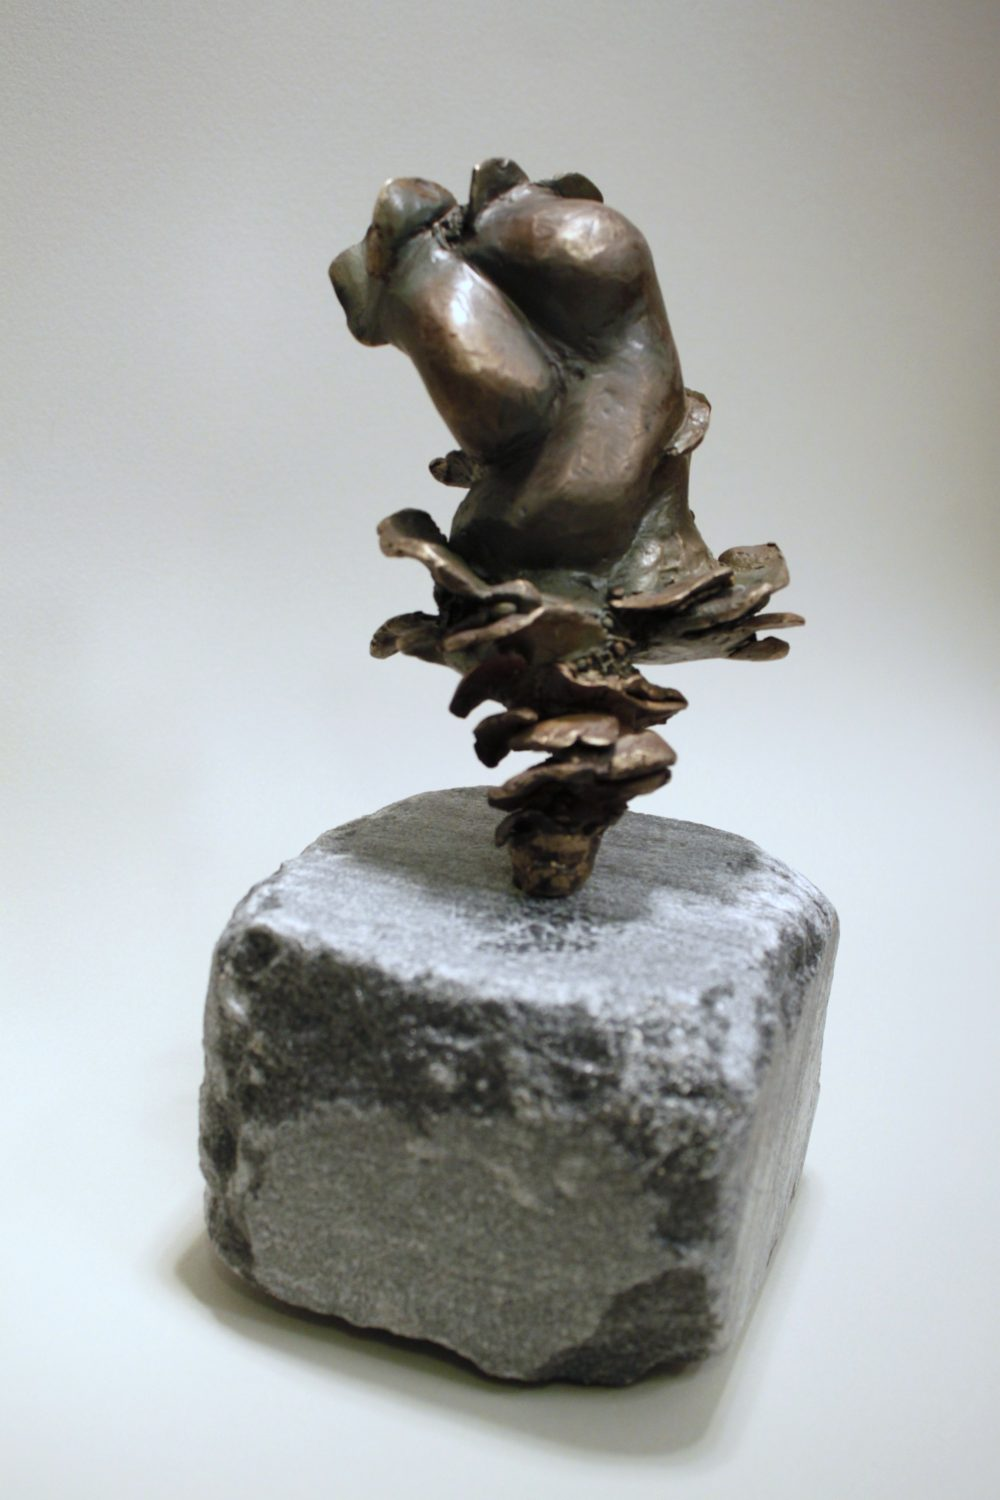 Abstract bronze sculpture reminiscent of female torso and waves, on stone cube base